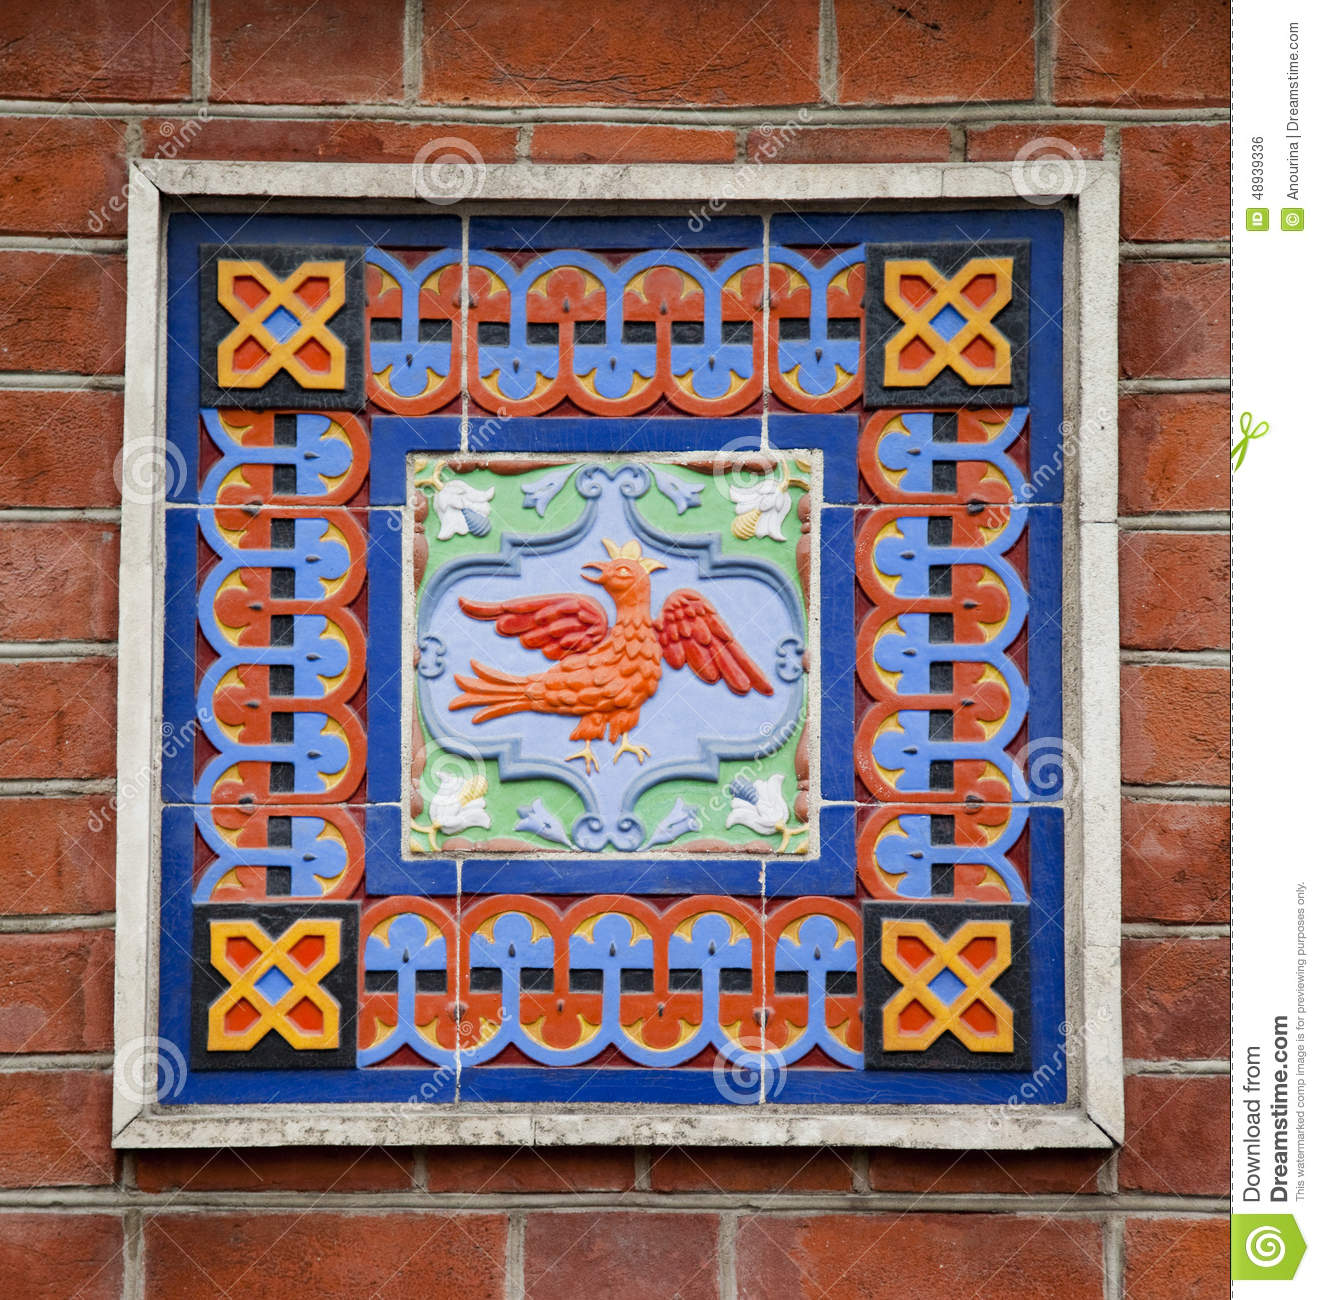 Ceramic Tile In Old Russian Stile Stock Photo - Image of background ...